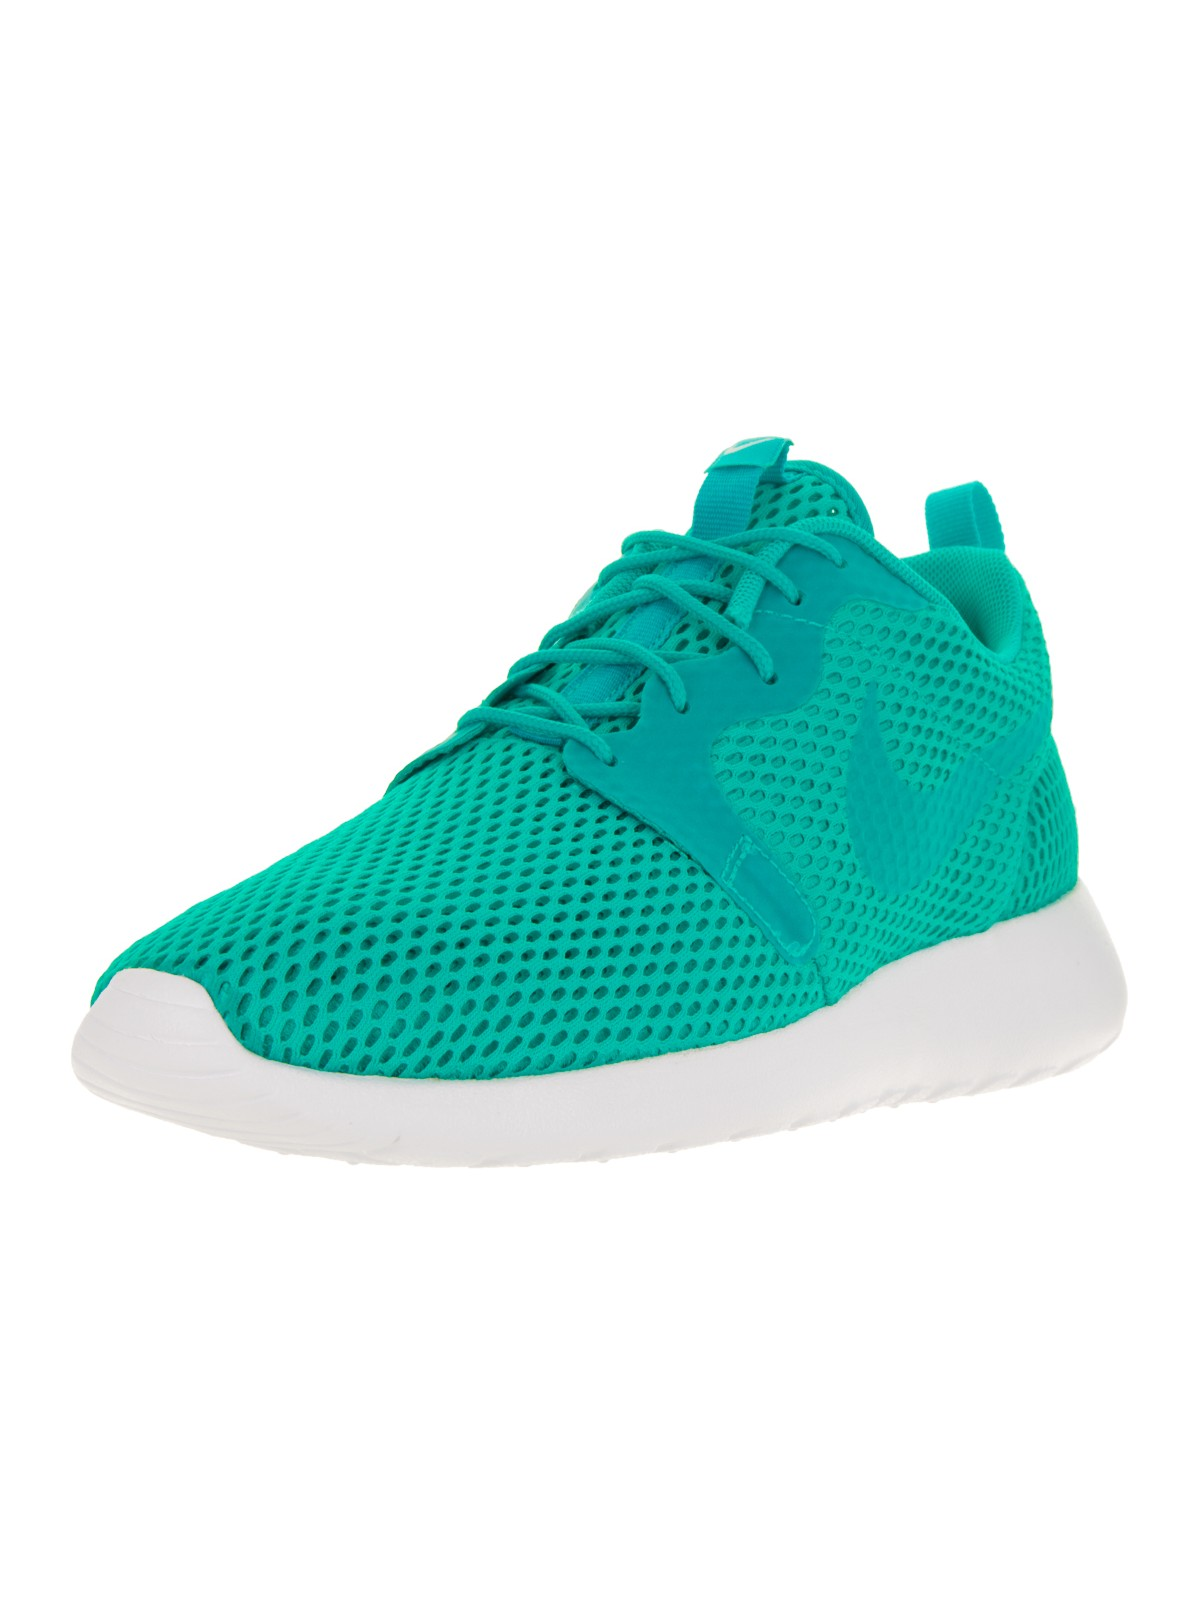 56c480c08c2e1d Nike Men s Roshe One Hyp Br Running Shoe